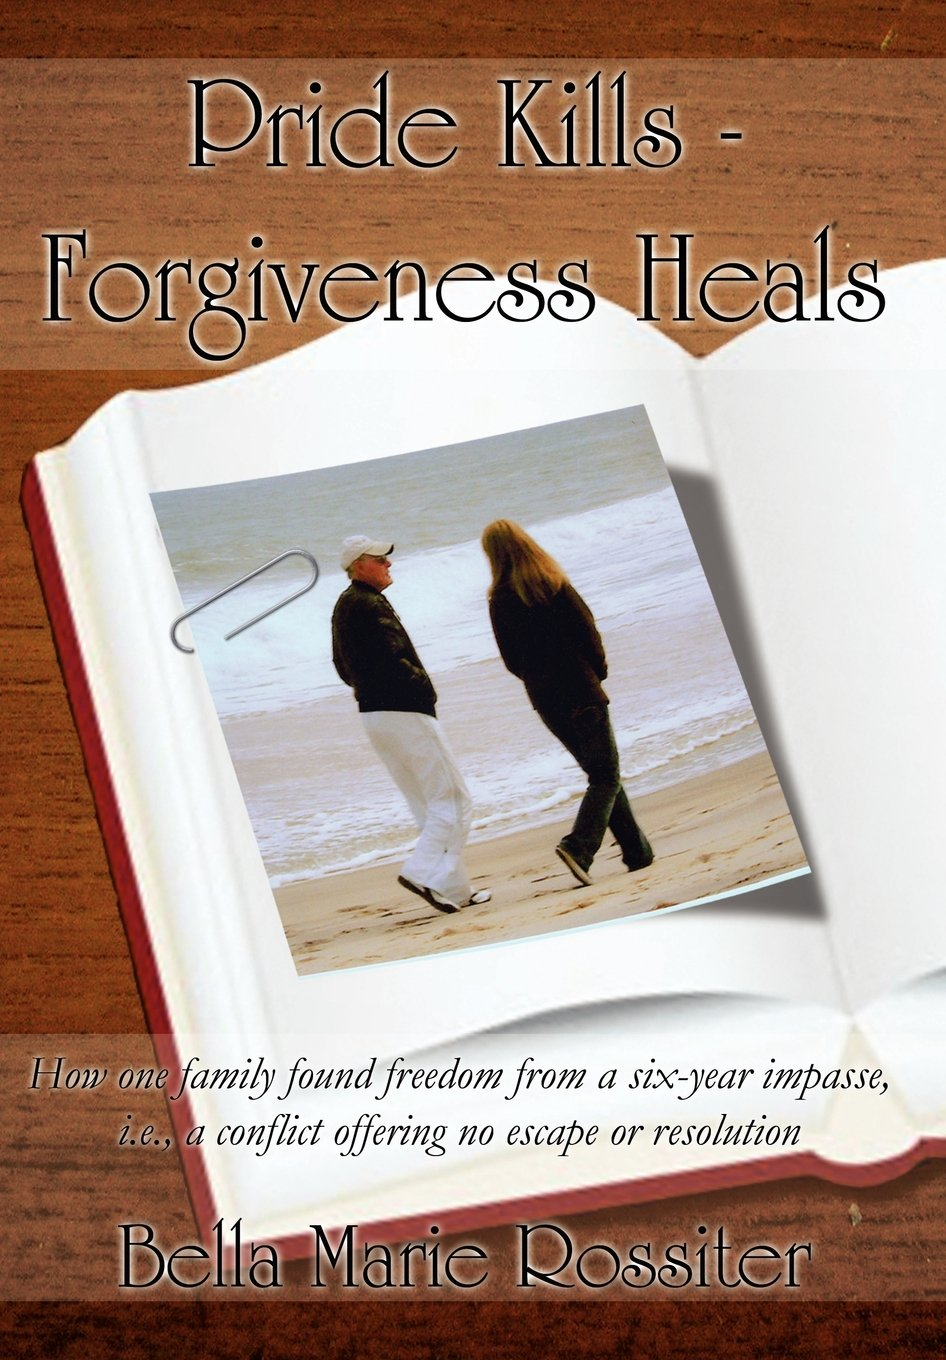 Amazon.com: Pride Kills - Forgiveness Heals: How One Family Found Freedom from a Six-Year Impasse, I.E., a Conflict Offering No Escape or Resolution ...